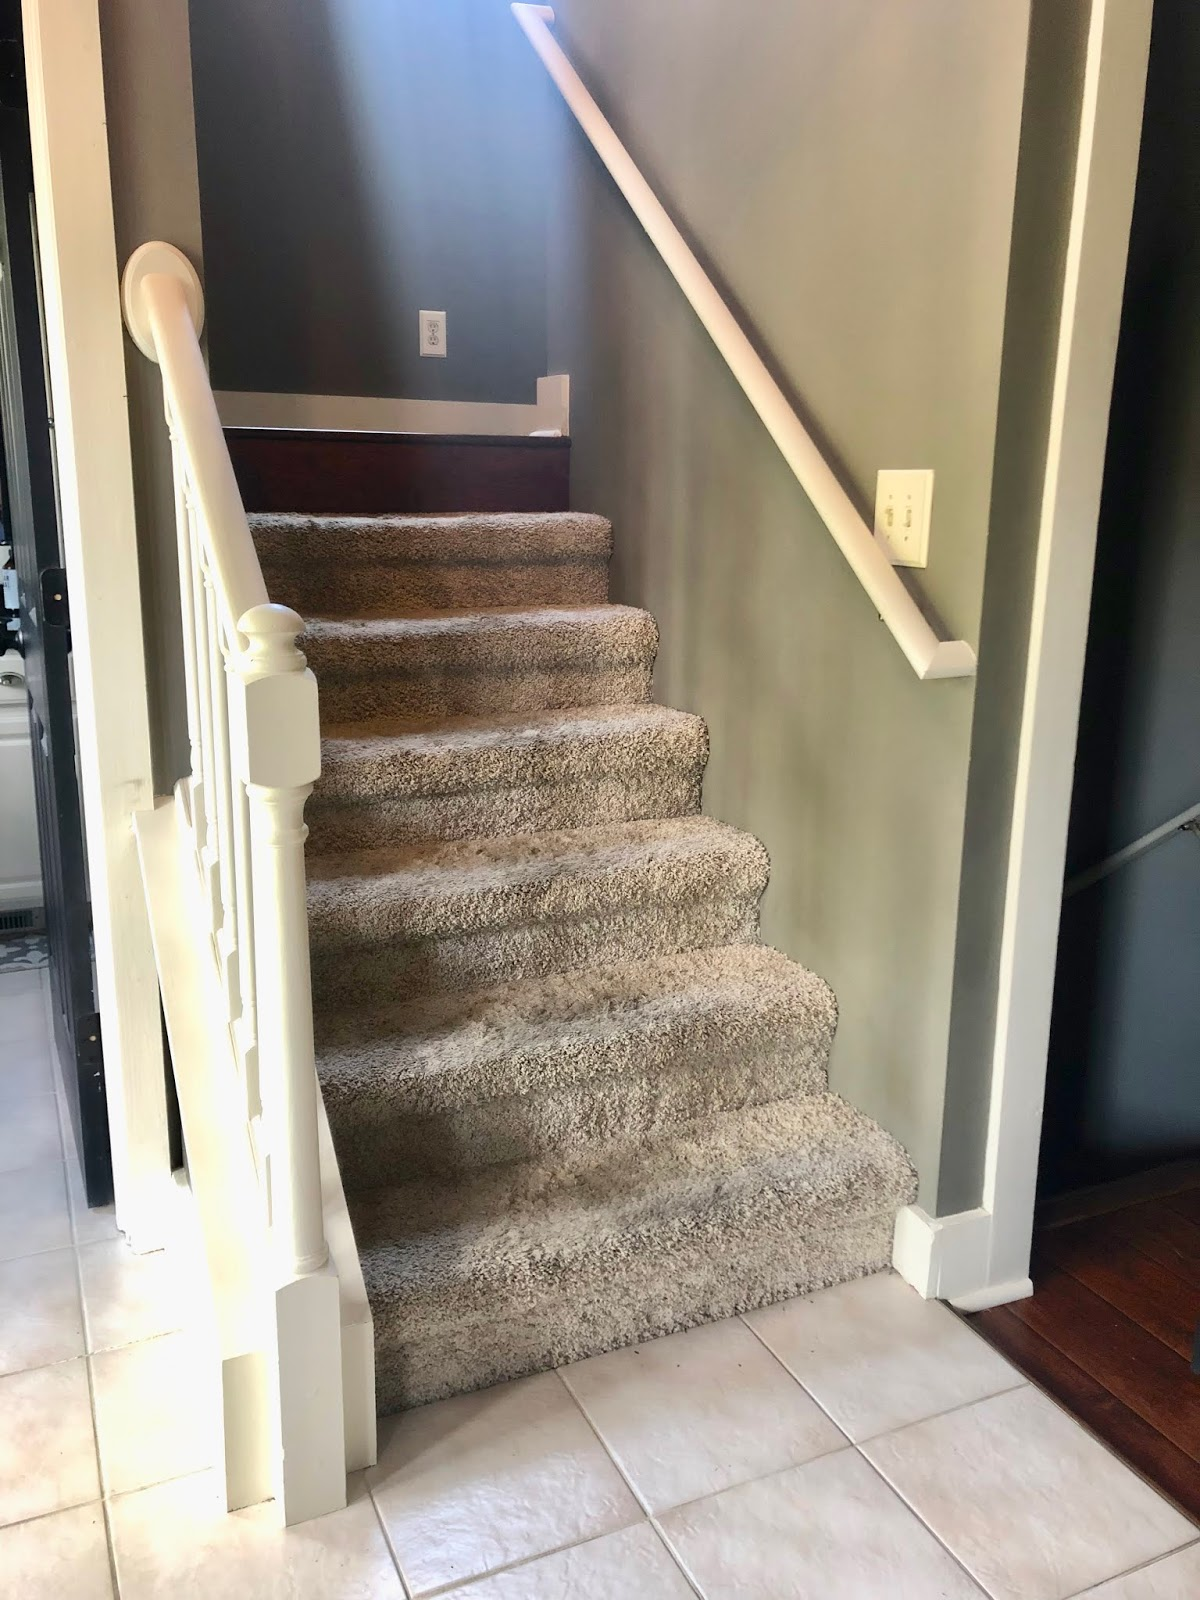 The Yellow Cape Cod Diy Staircase Makeover Tutorial With Cap A   Carpeted Stairs With Wood End Caps   Stair Railing   Waterfall   Diy   Capped   Step